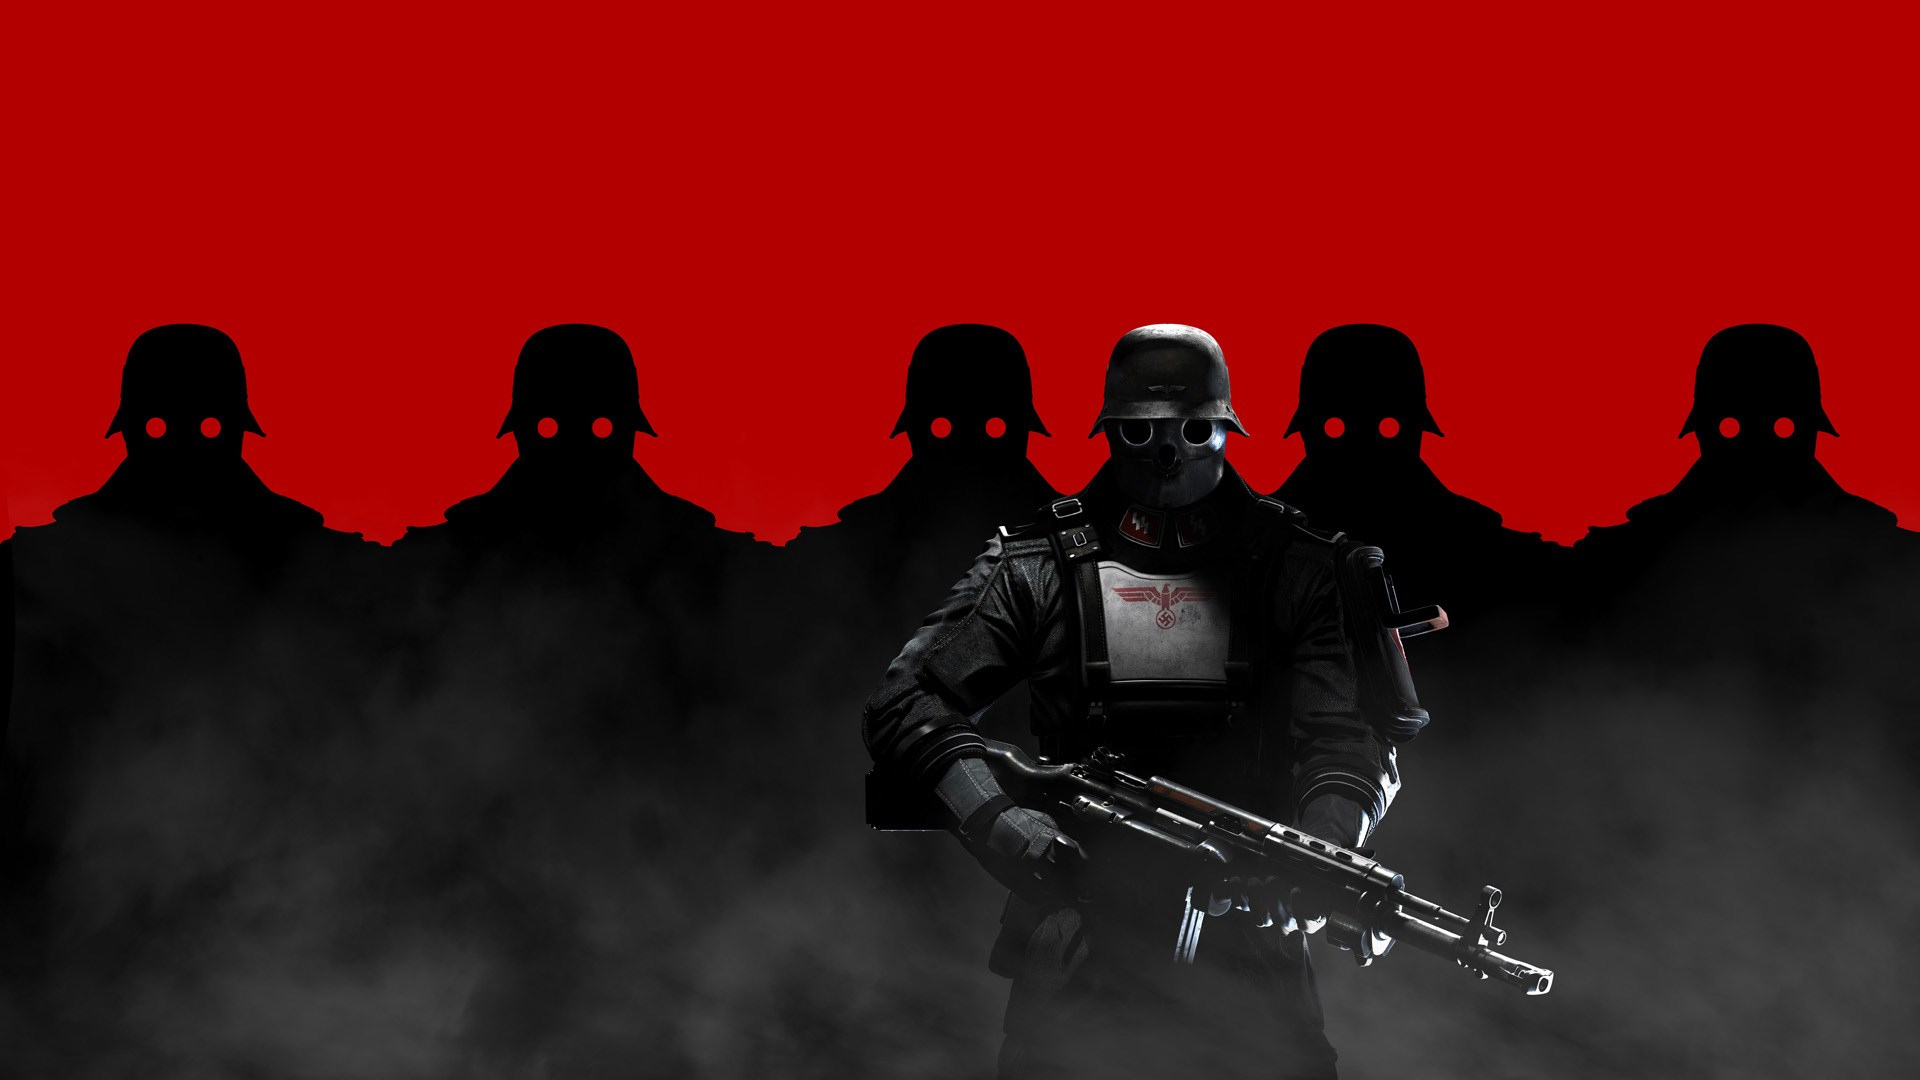 ANALIS DIS: WOLFENSTEIN